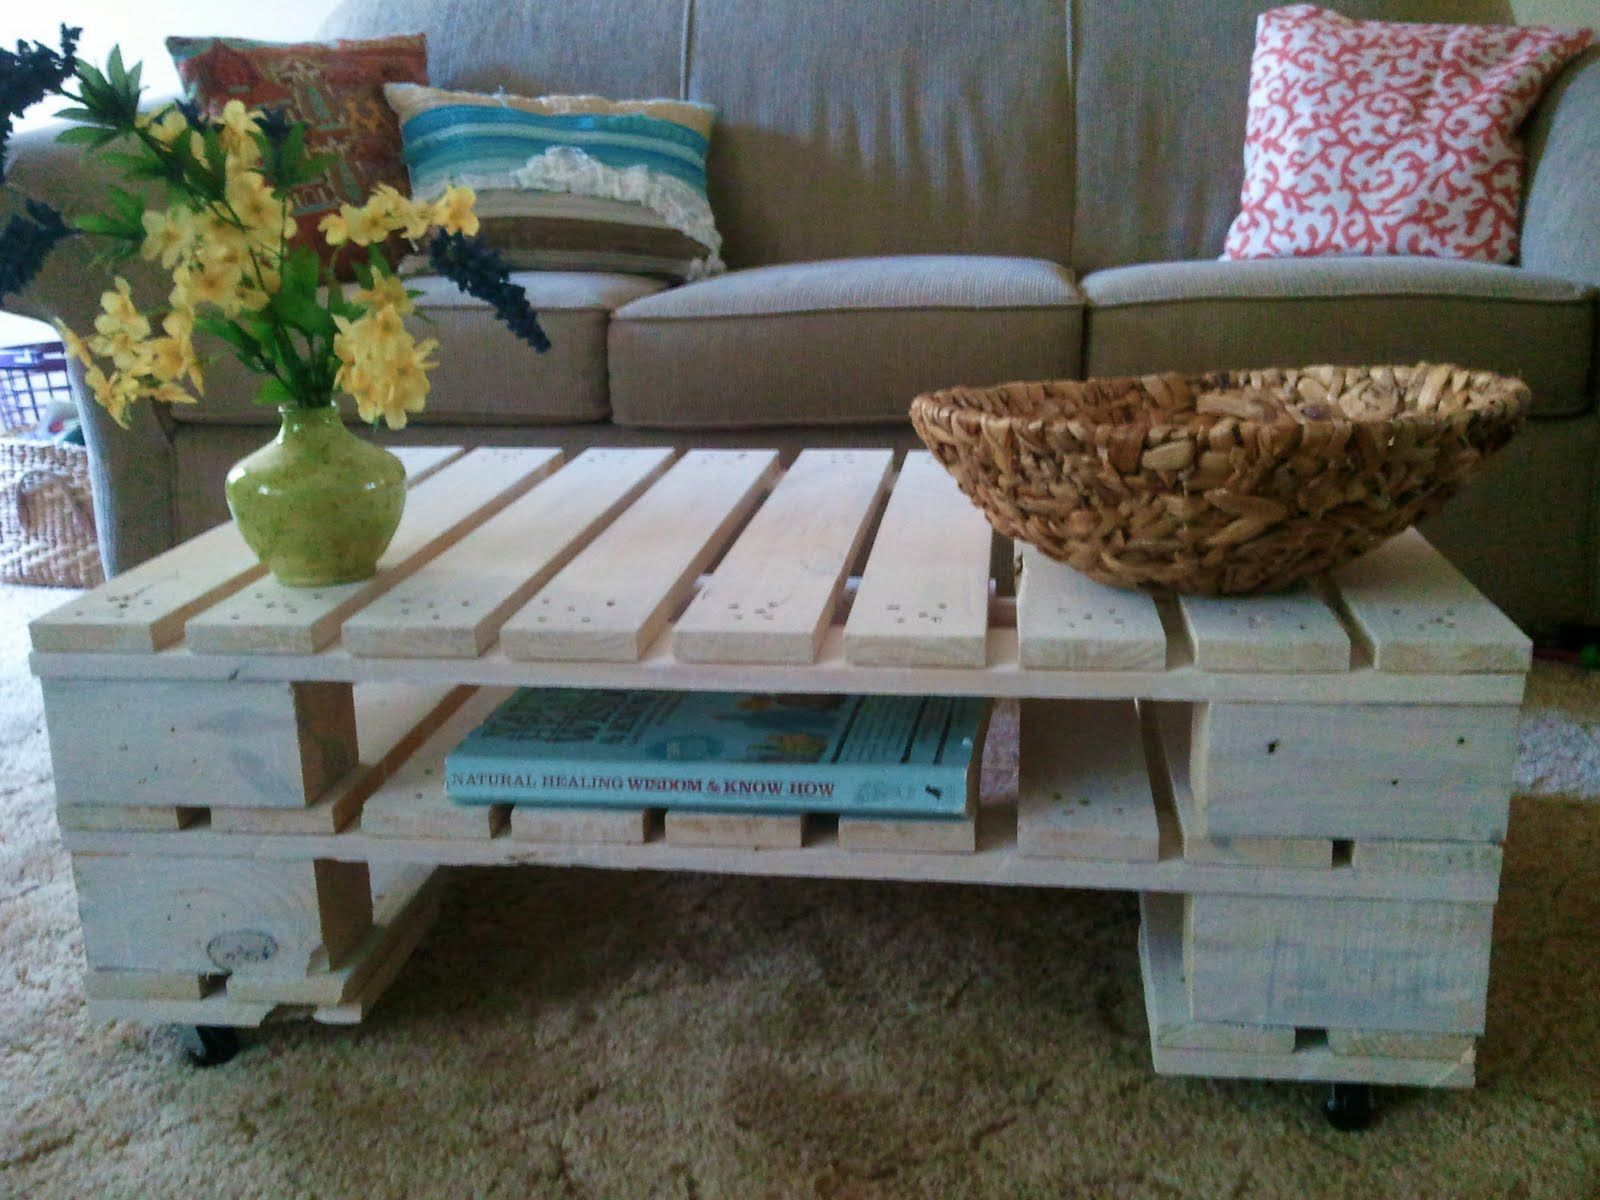 21 Ways Of Turning Pallets Into Unique Pieces Of Furniture Furniture Make At Home on office at home, litter at home, golf at home, shopping at home, internet service at home, floor at home, jewelry at home, art at home, security at home, cell phones at home, desk at home, table at home, internet connection at home, storage at home, cars at home, metalworking at home, landscaping at home,